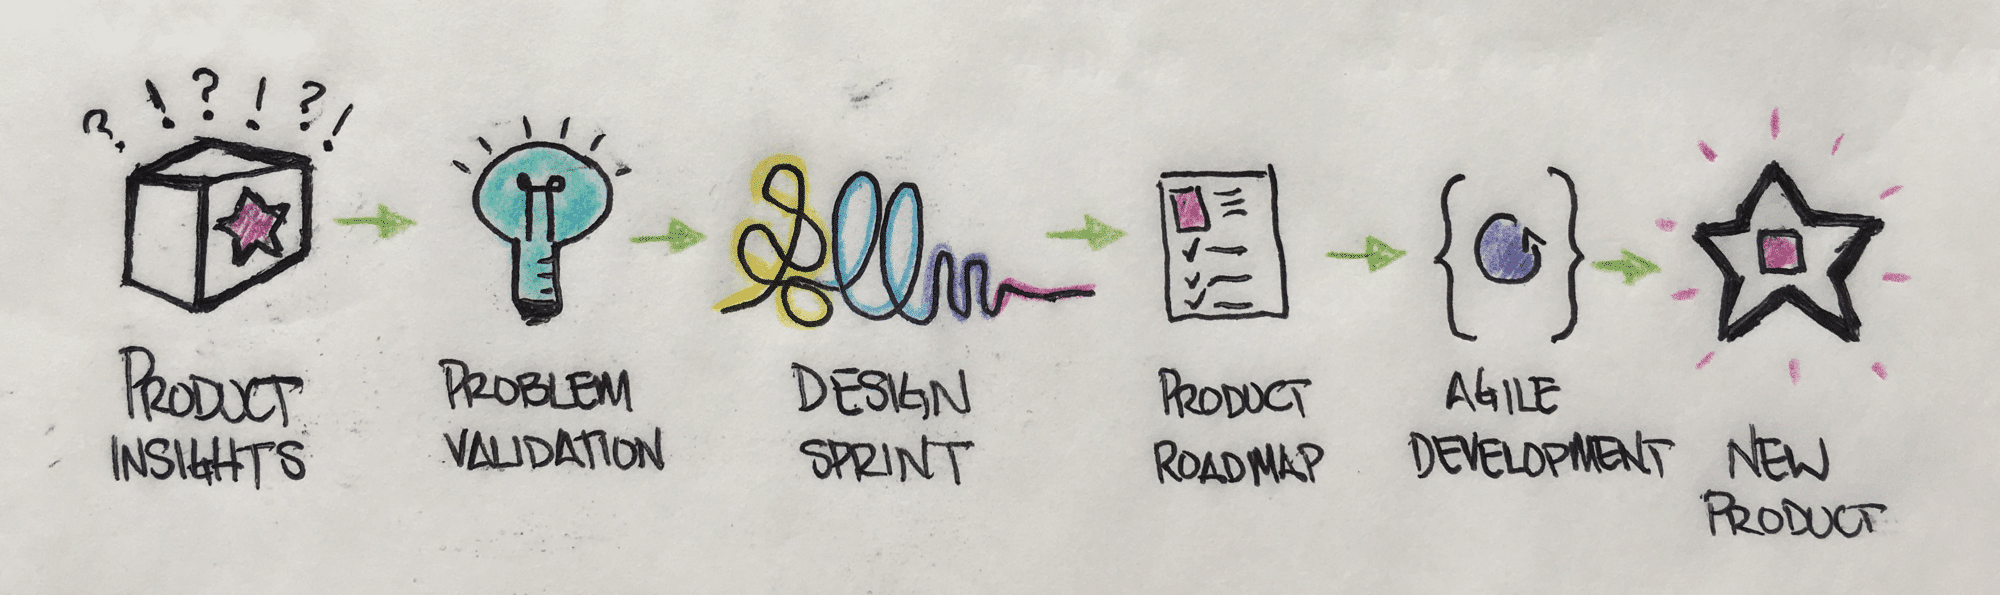 Design sprint stages